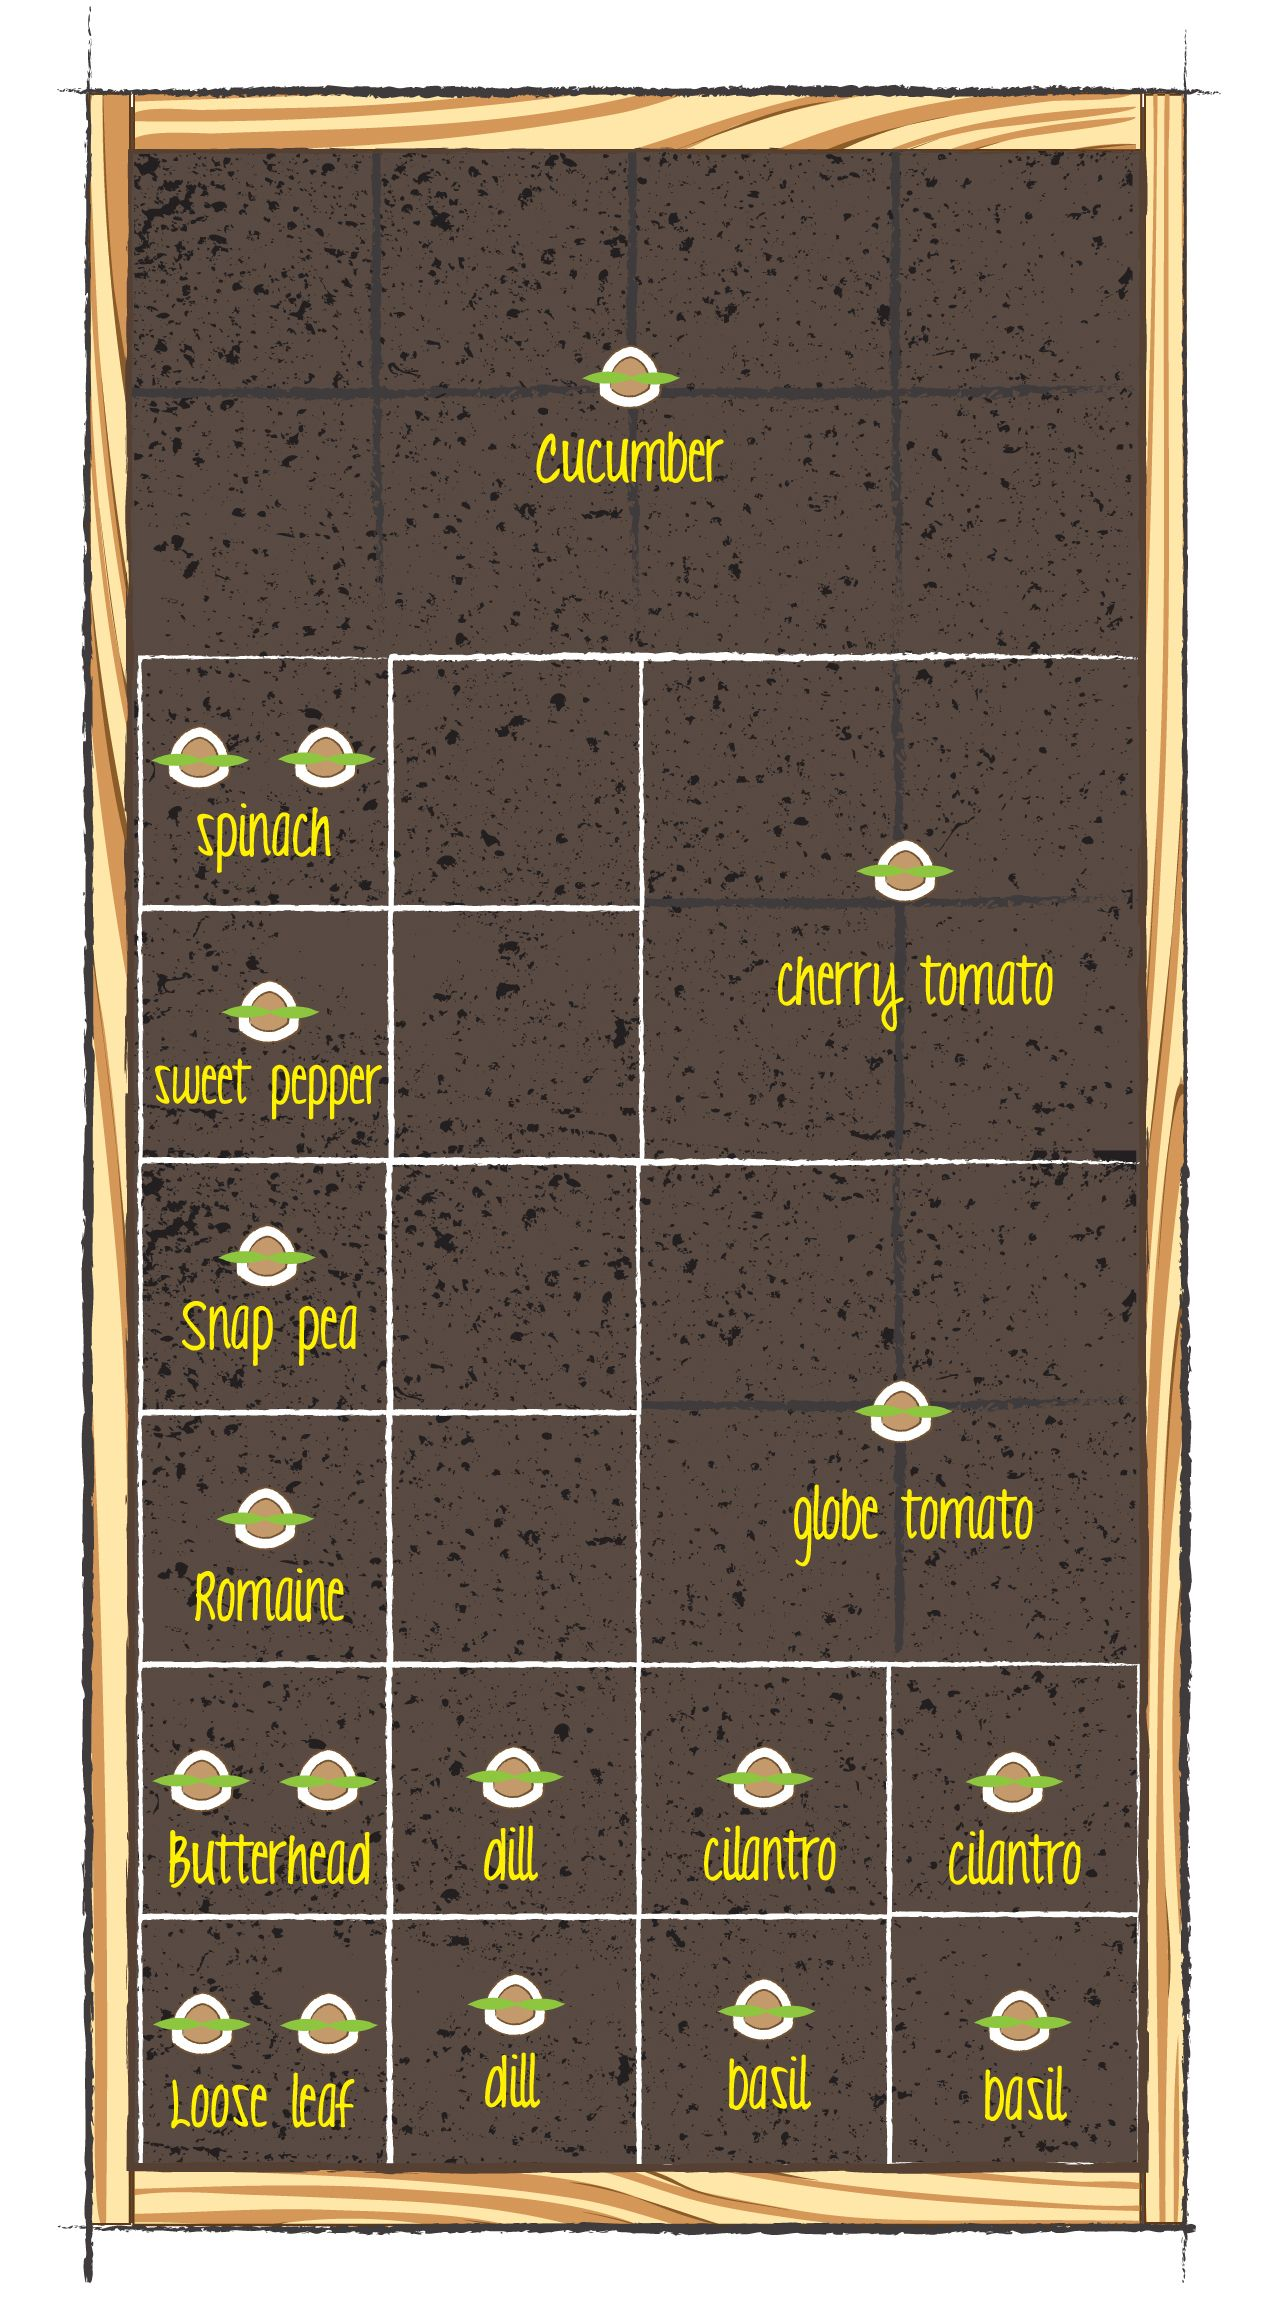 Simple square foot garden layout for the Gro-ables Salad ...